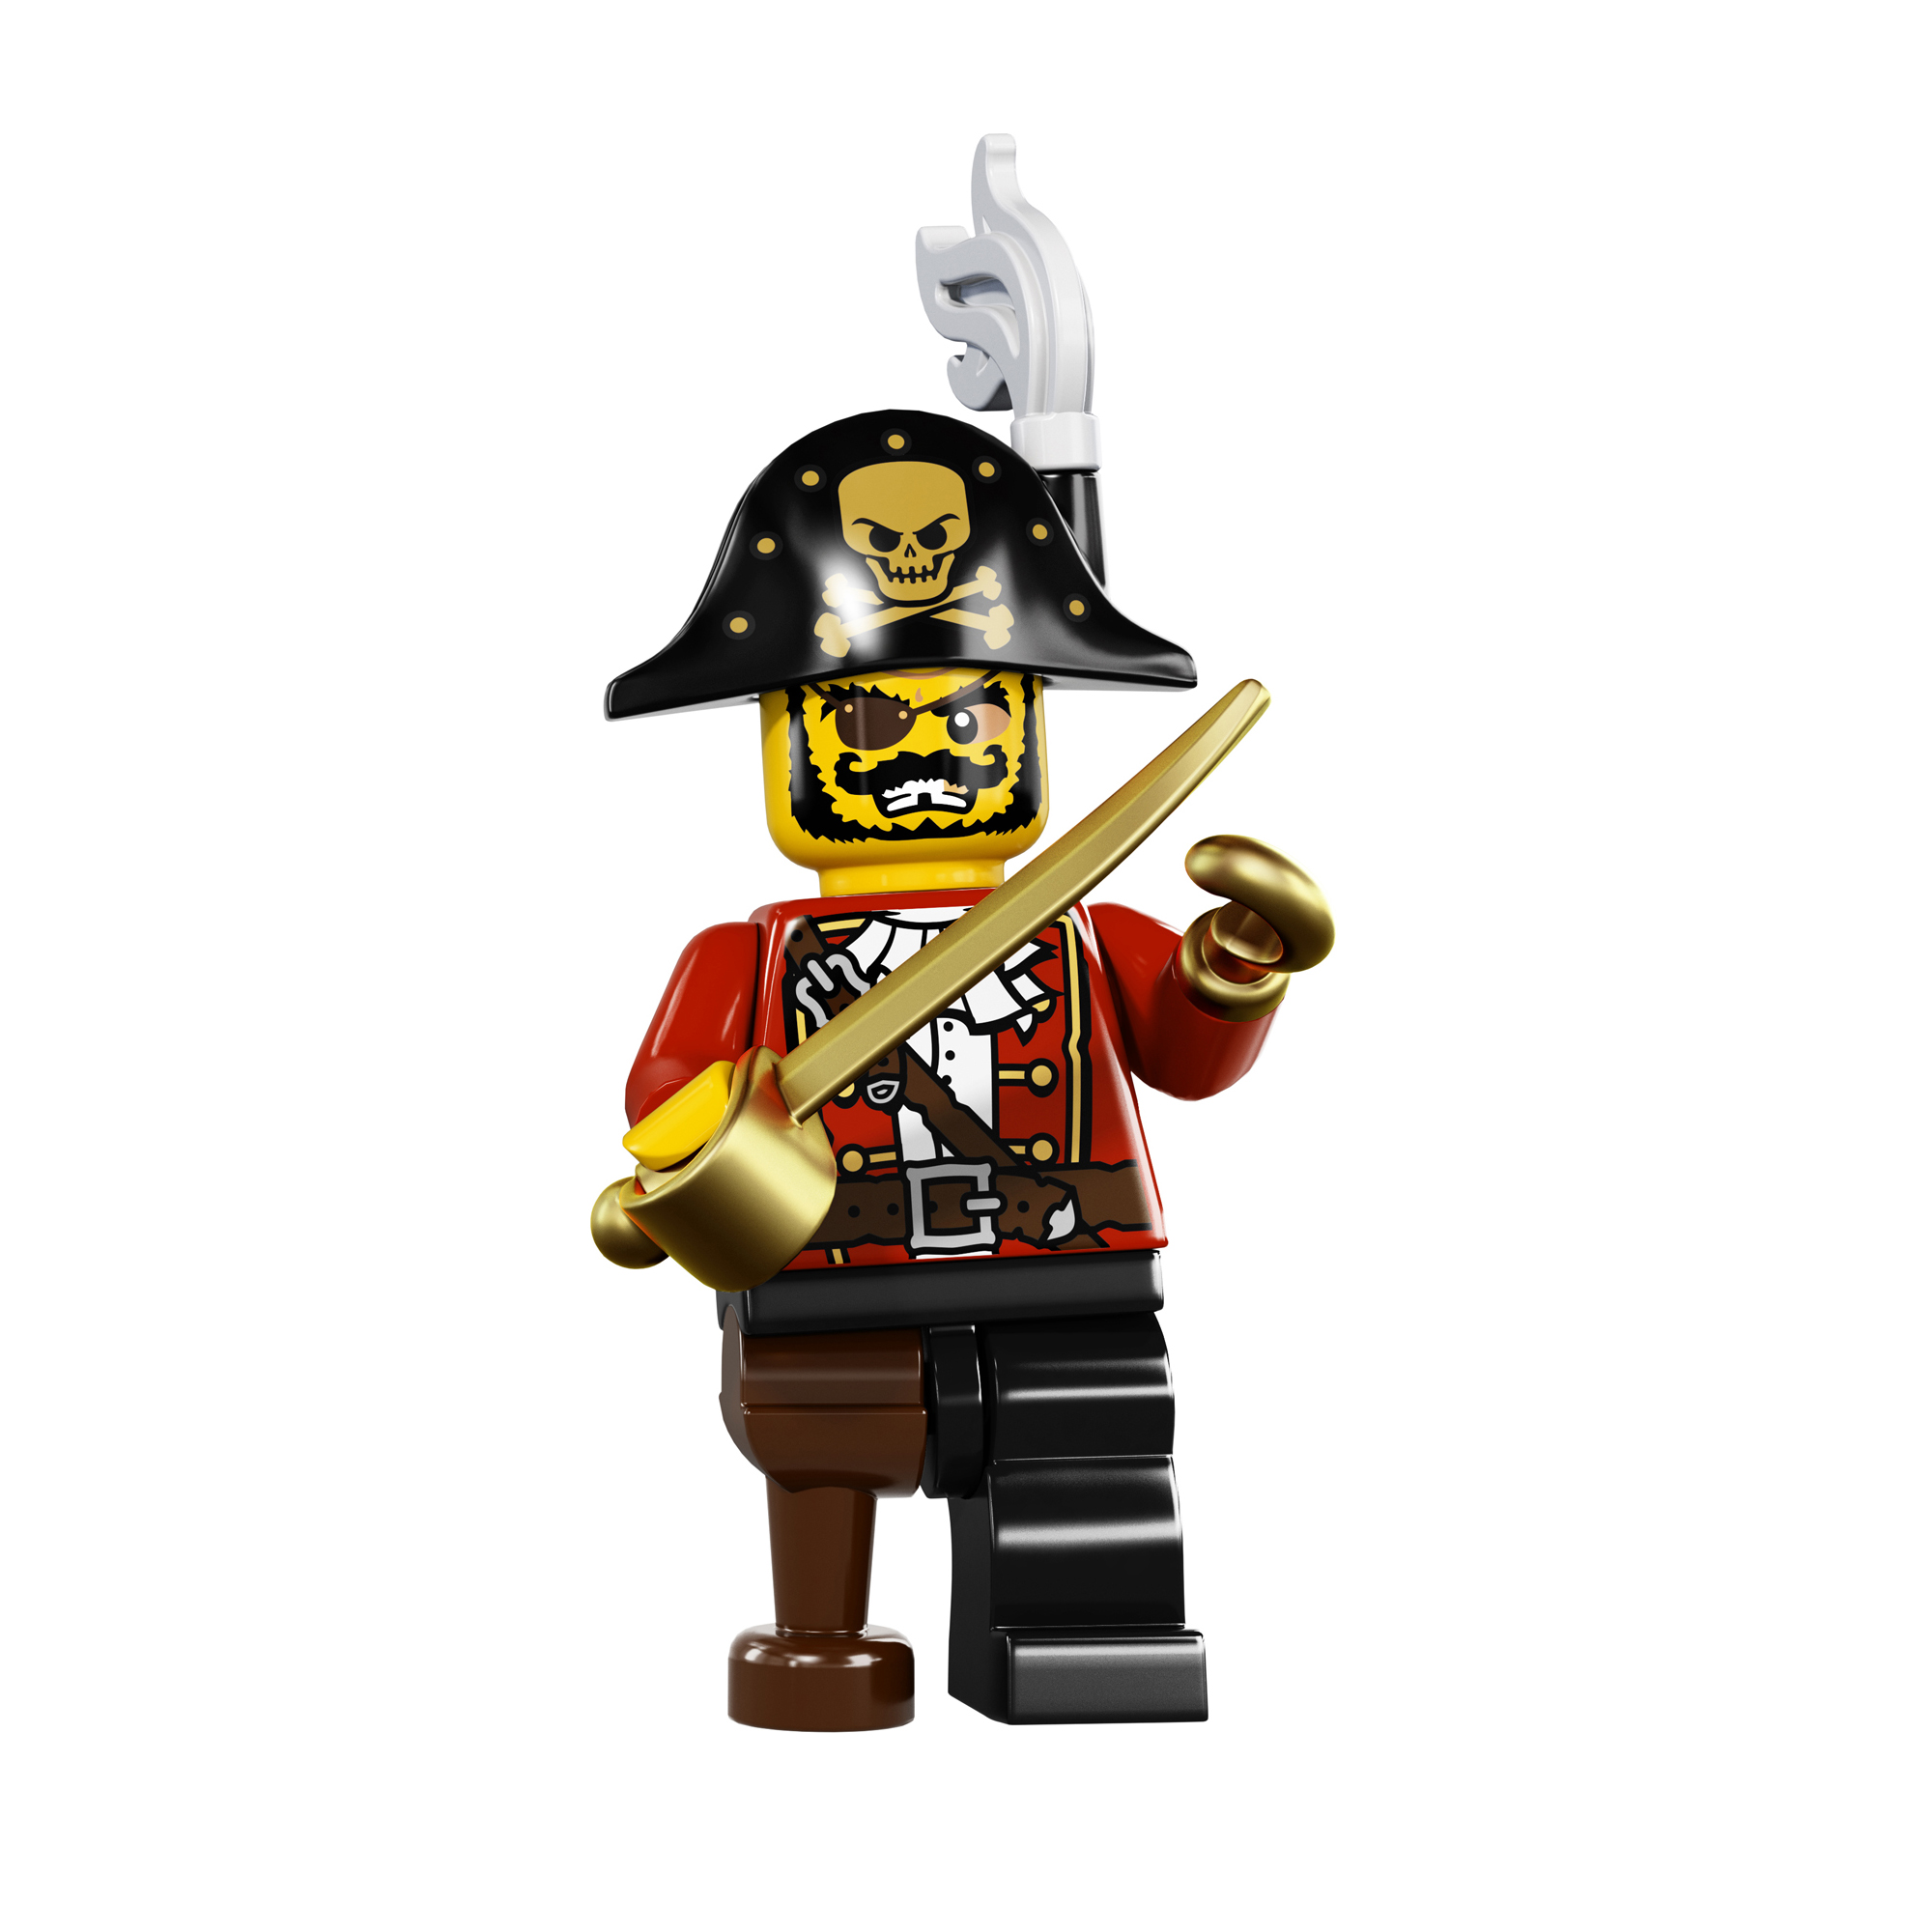 j_8833_pirate_captain.jpg